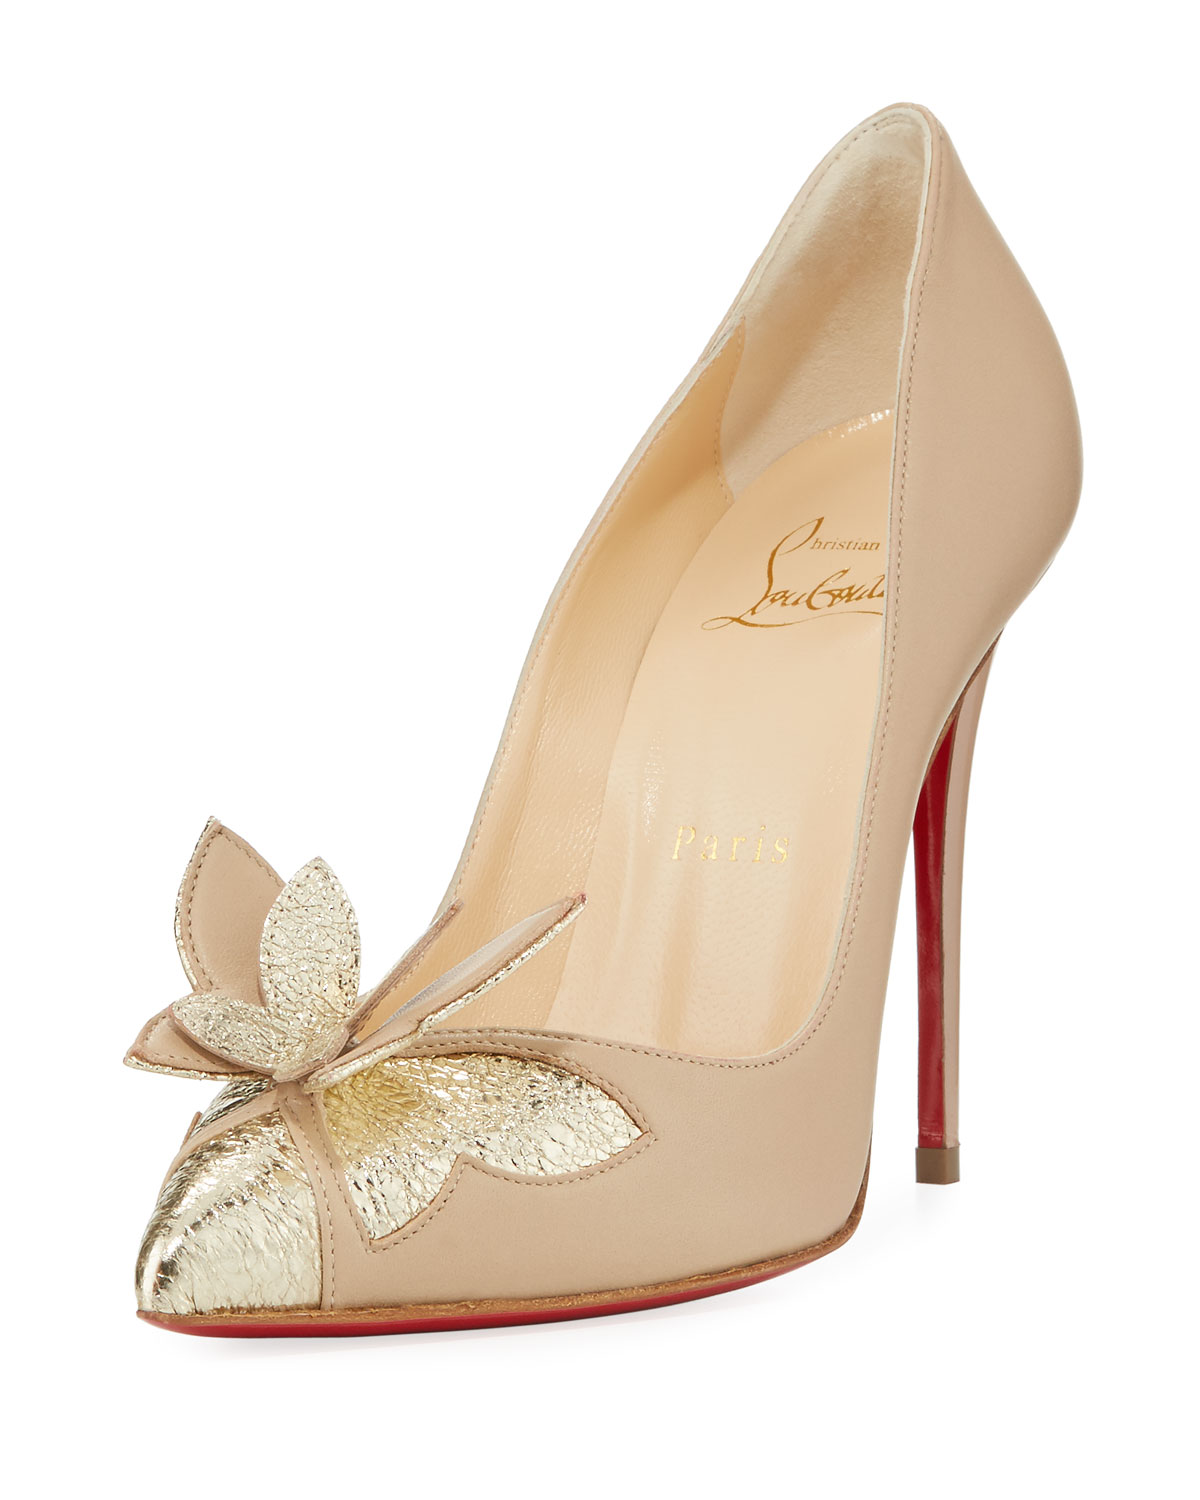 a804c895d44a Christian Louboutin Maripopump Butterfly Red Sole Pumps